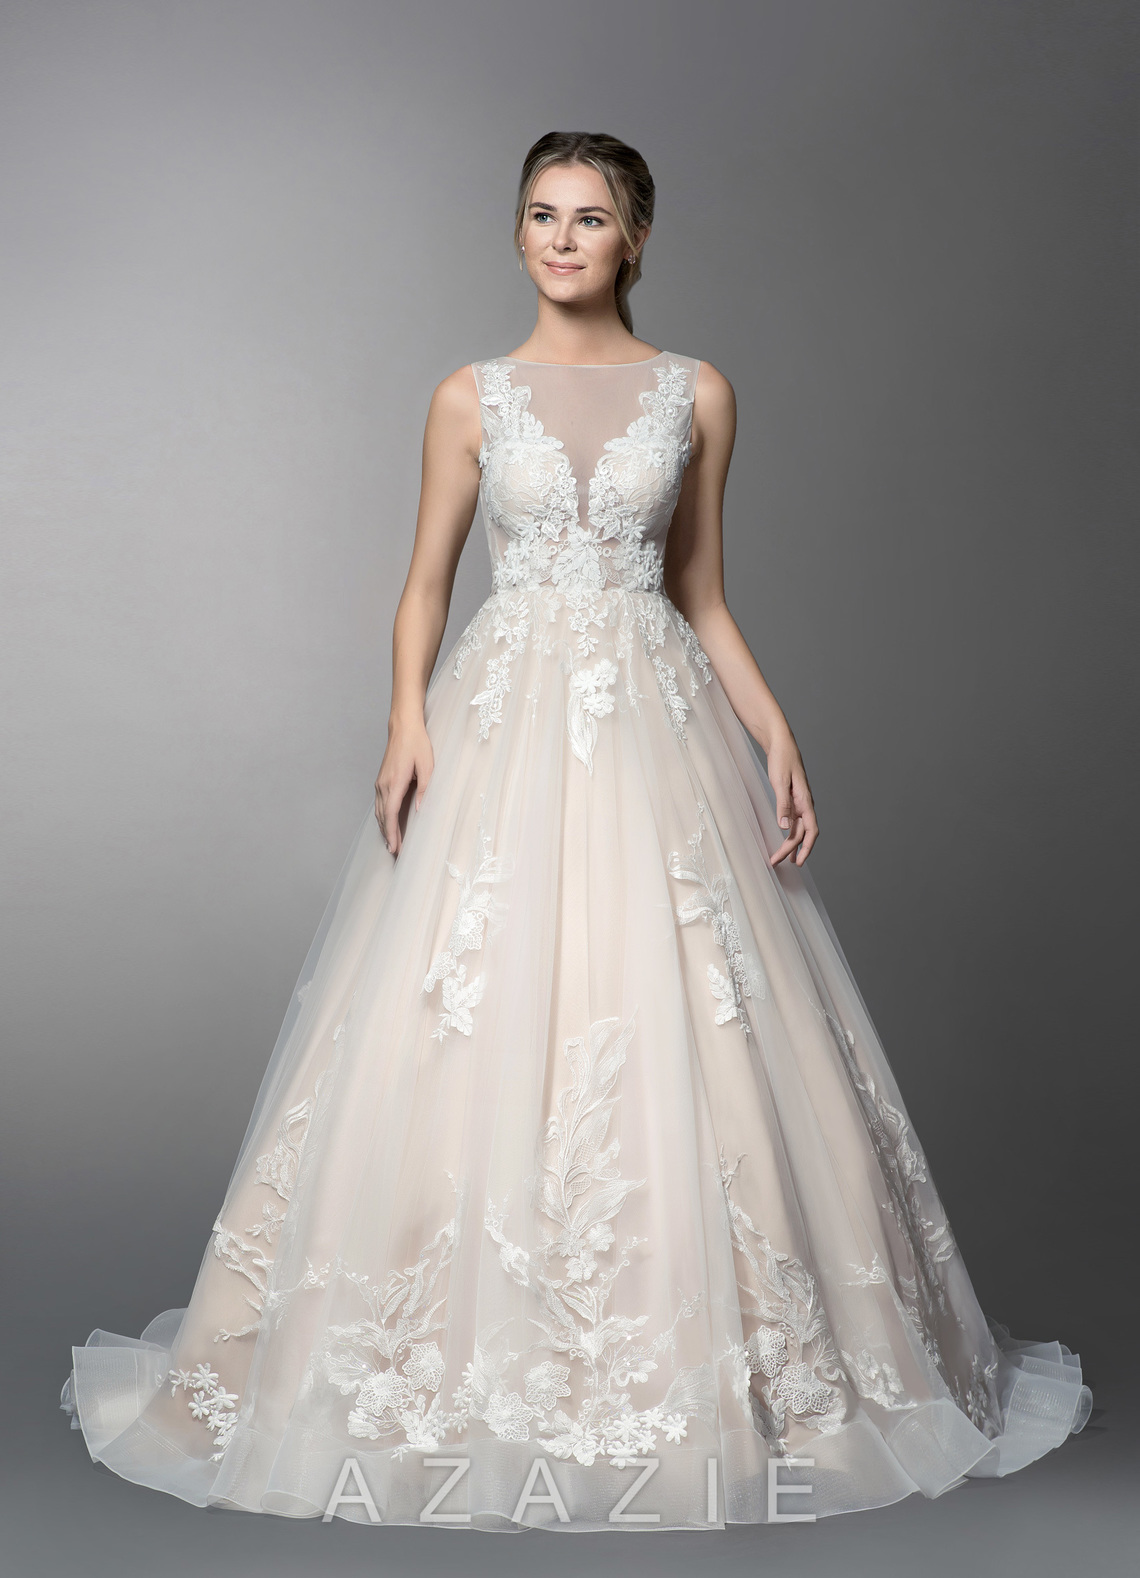 5d386463c1e21 Azazie Sedona BG Wedding Dress | Azazie